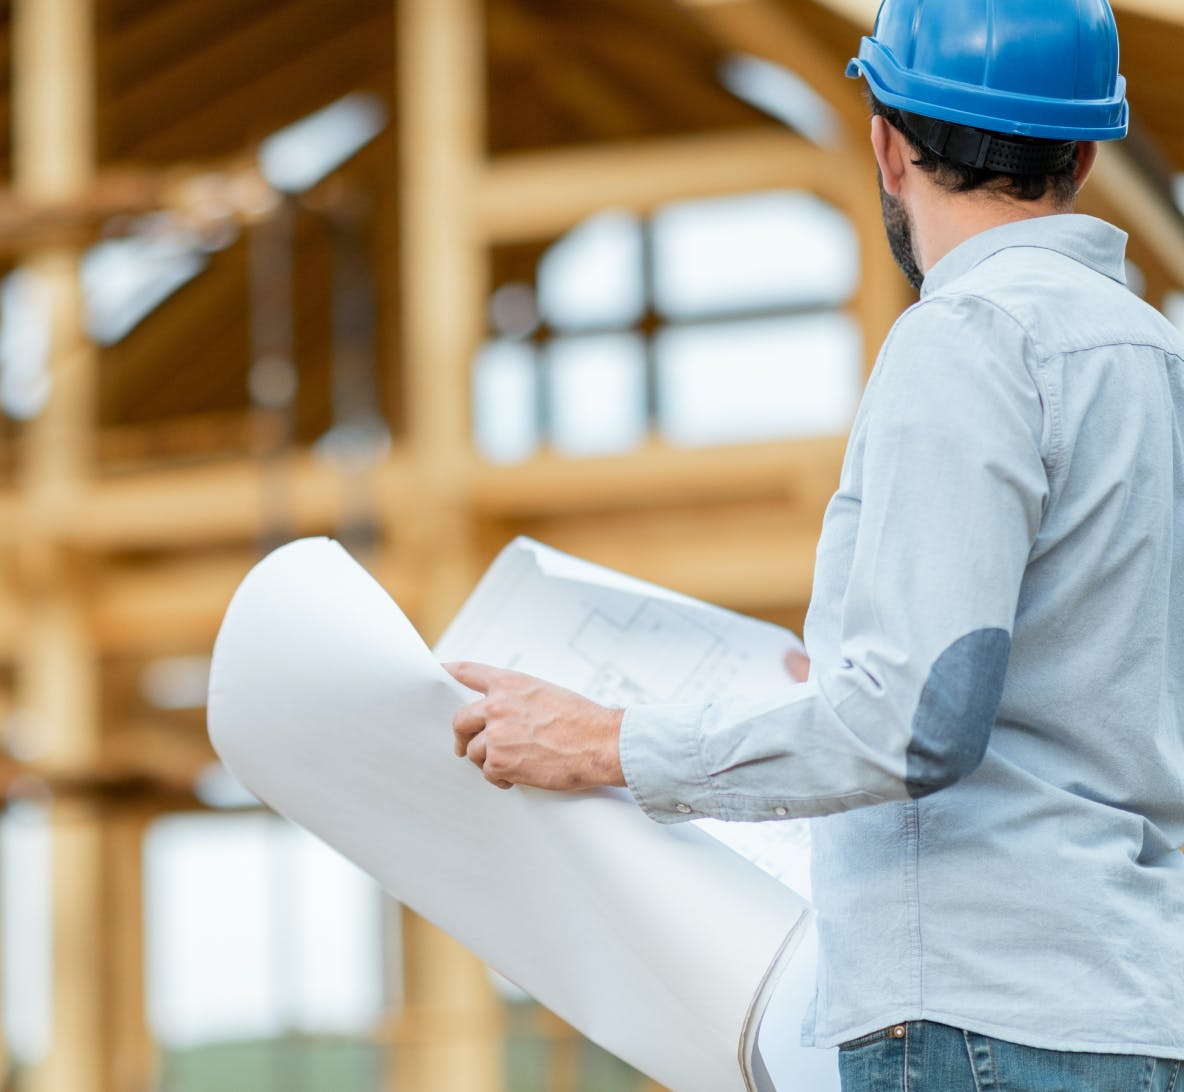 General Contractors use Houzz Pro software to grow and manage their businesses